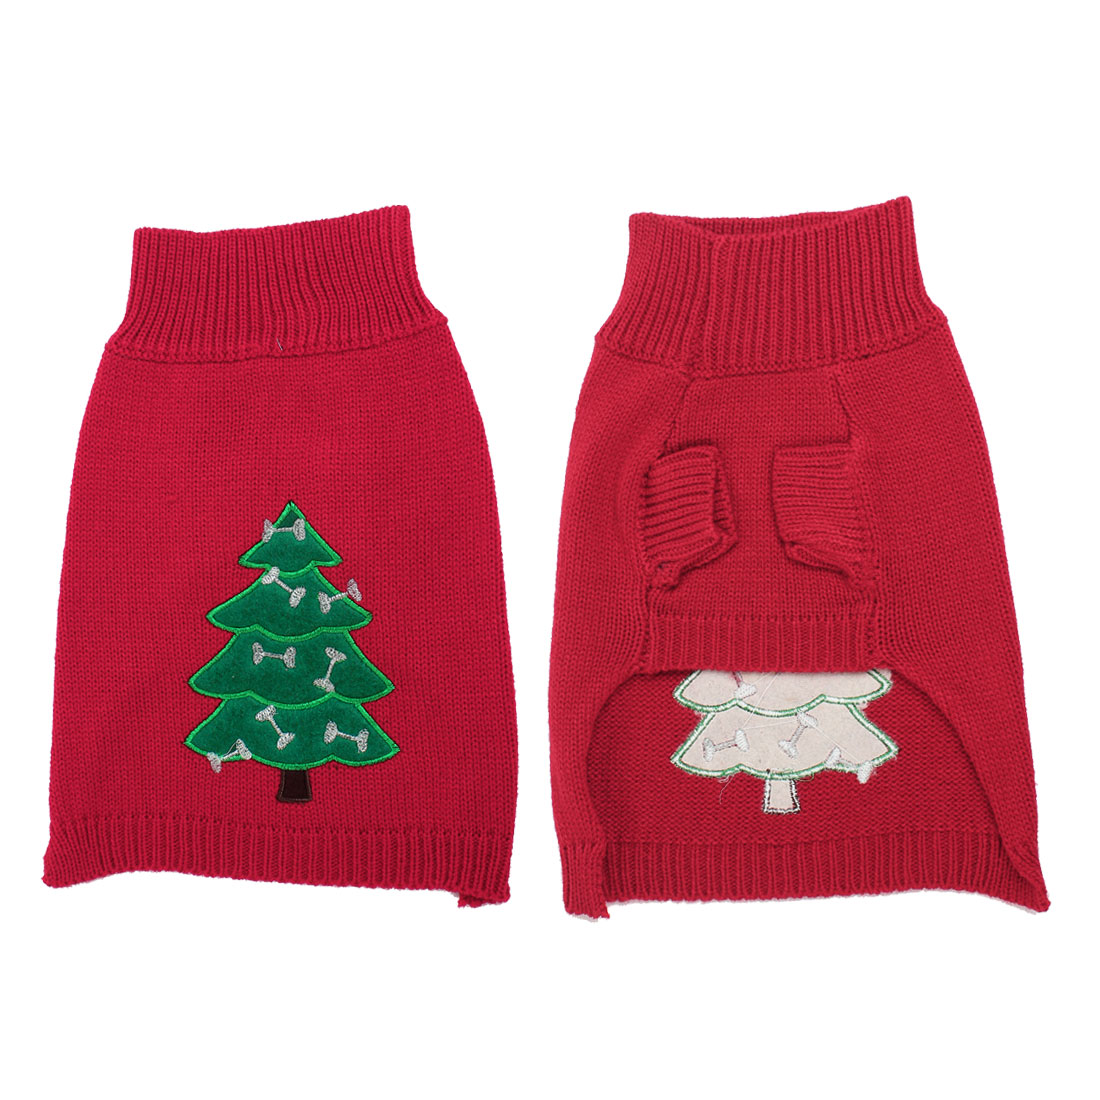 Ribbed cuff christmas tree pattern pet dog yorkie clothes sweater